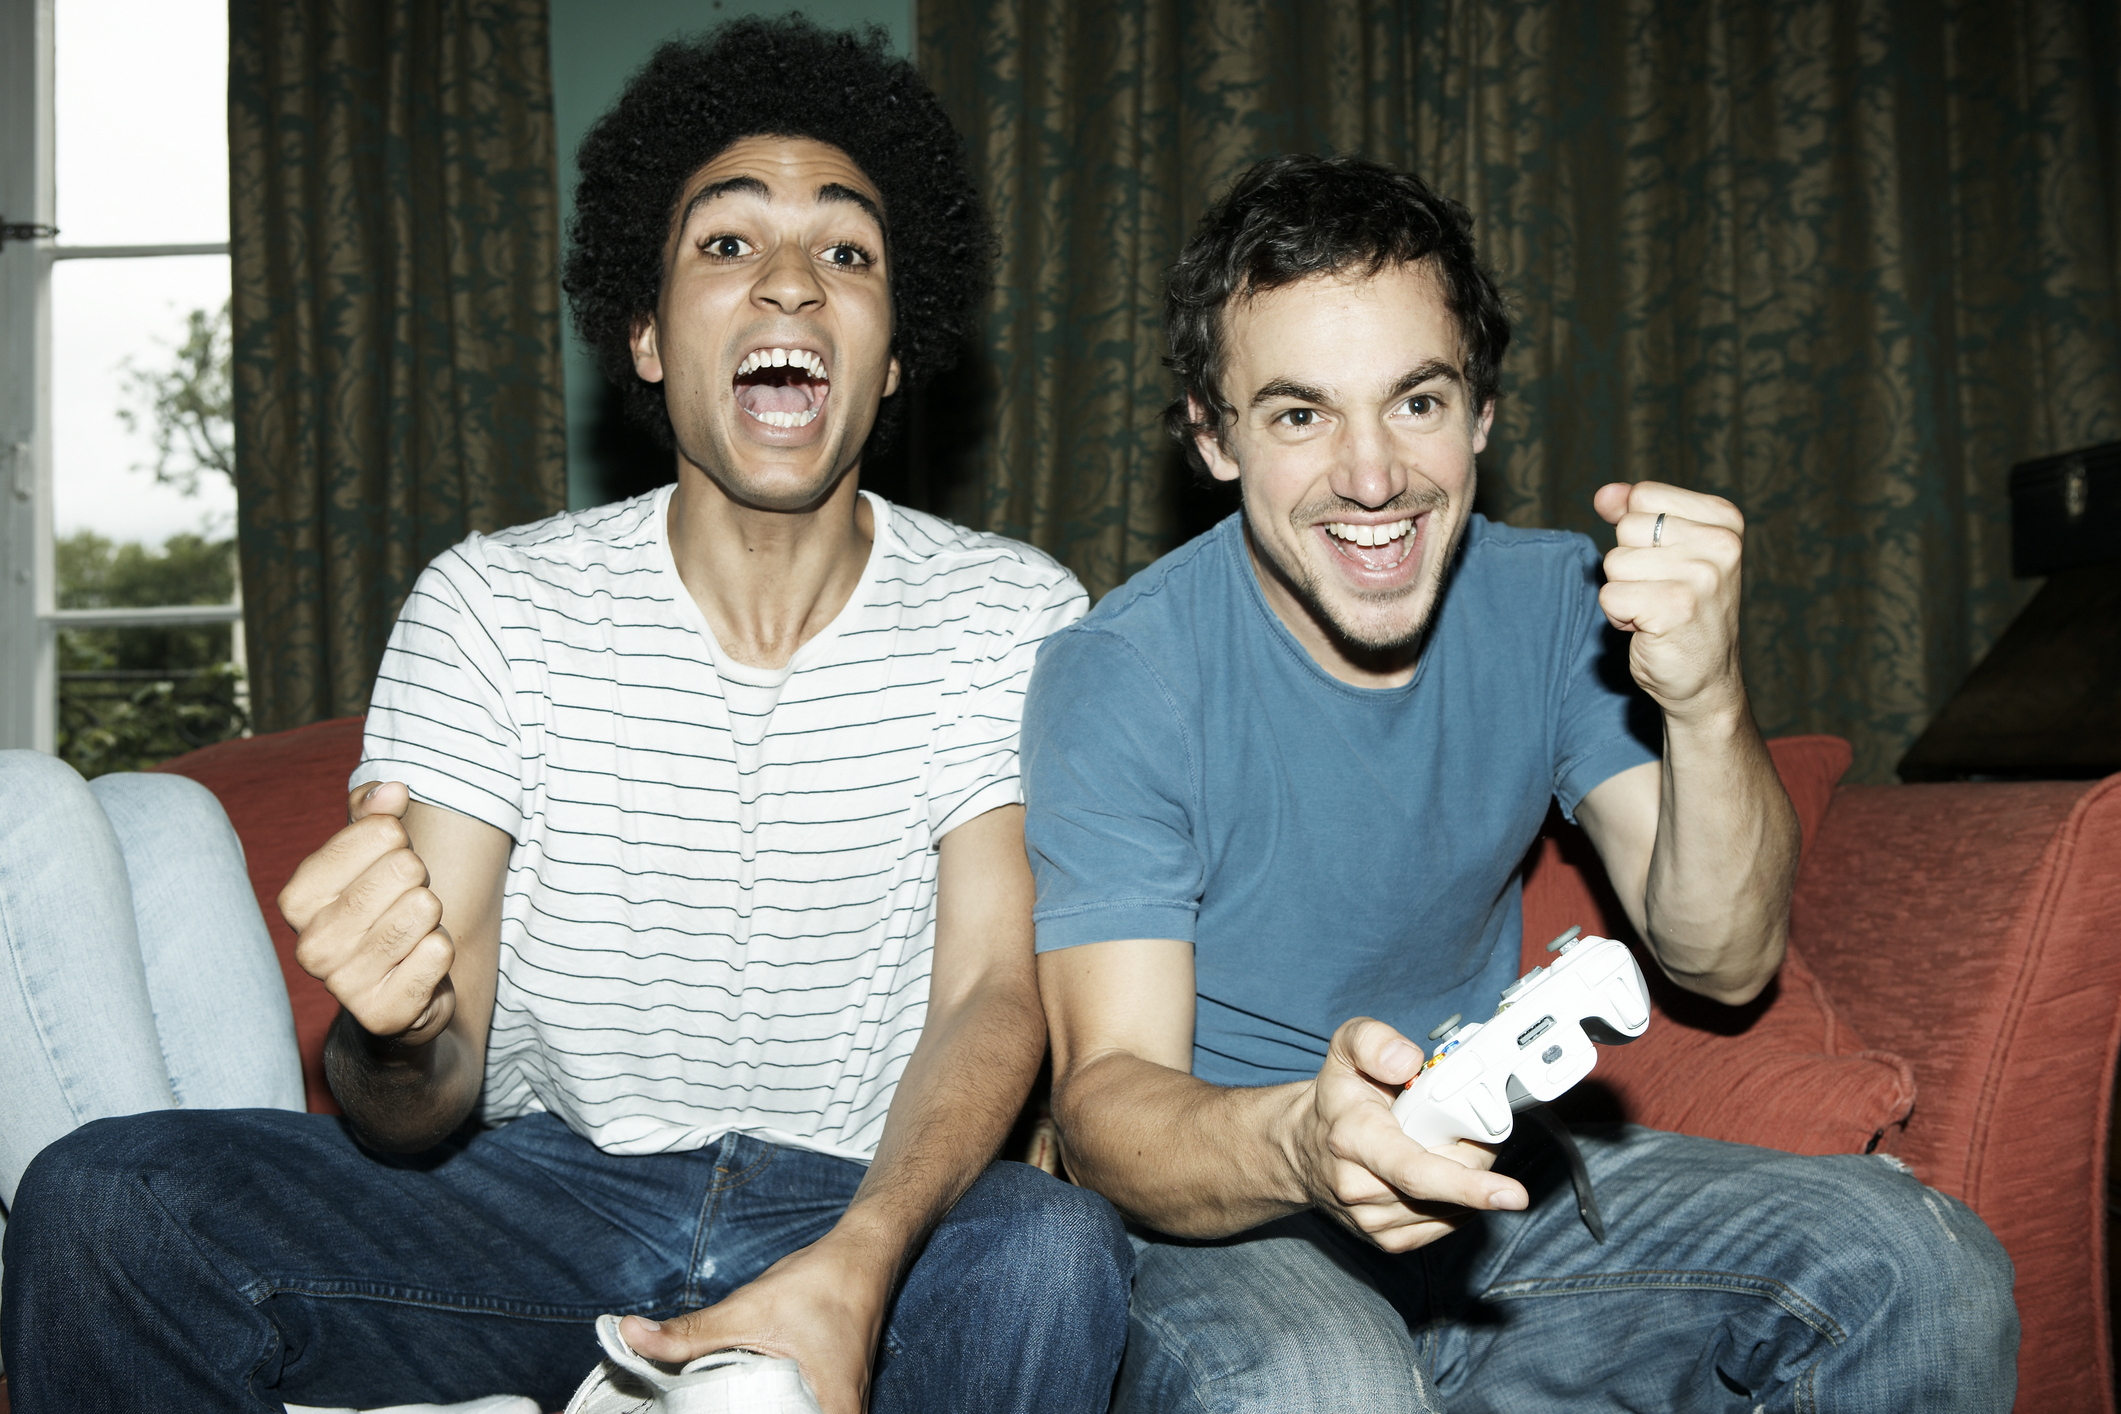 Electronic Arts' Earnings Rise as Interactive Entertainment Industry Expands -- The Motley Fool